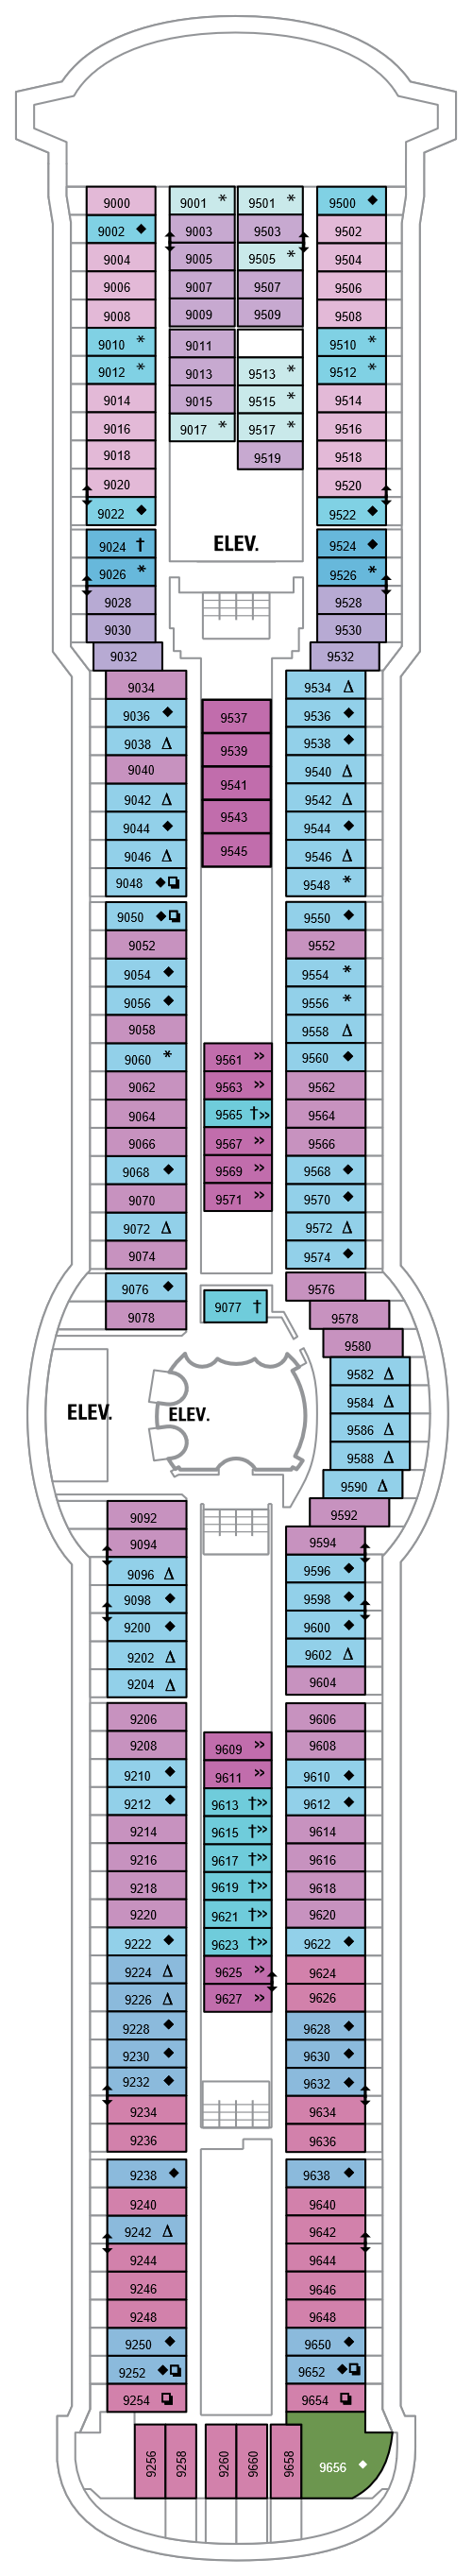 Serenade Of The Seas Deck 9 layout